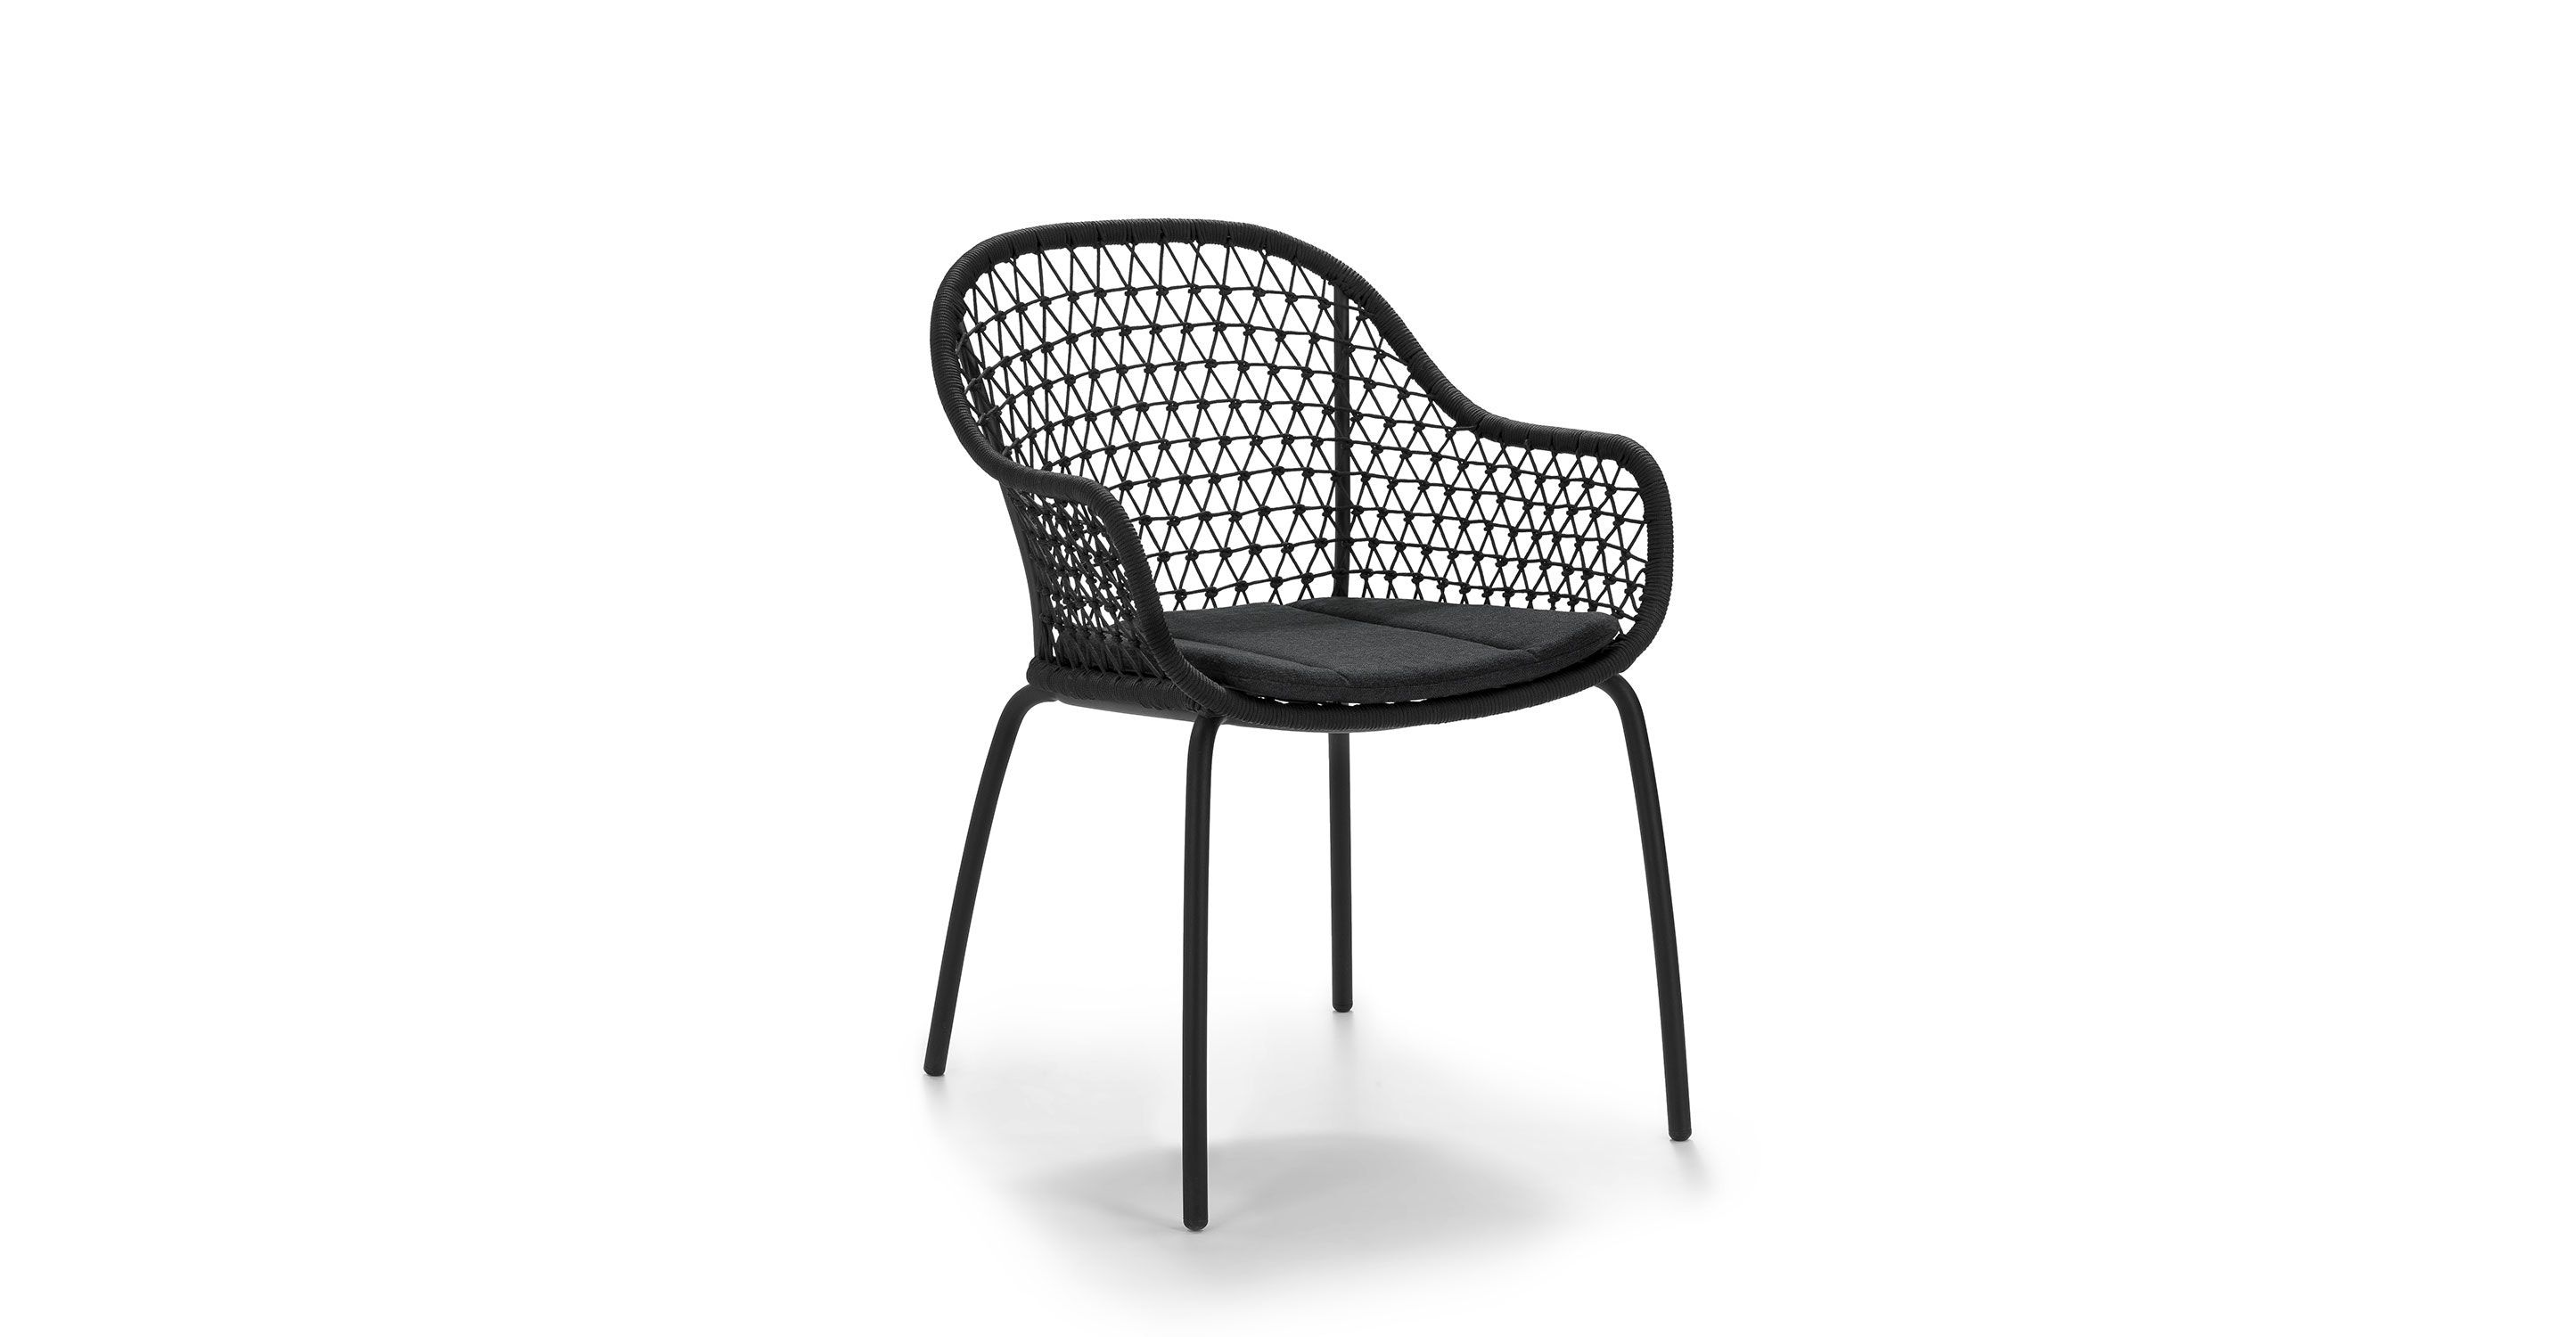 Cool Sylva Graphite Black Dining Chair Patio 71 Black Dining Gmtry Best Dining Table And Chair Ideas Images Gmtryco